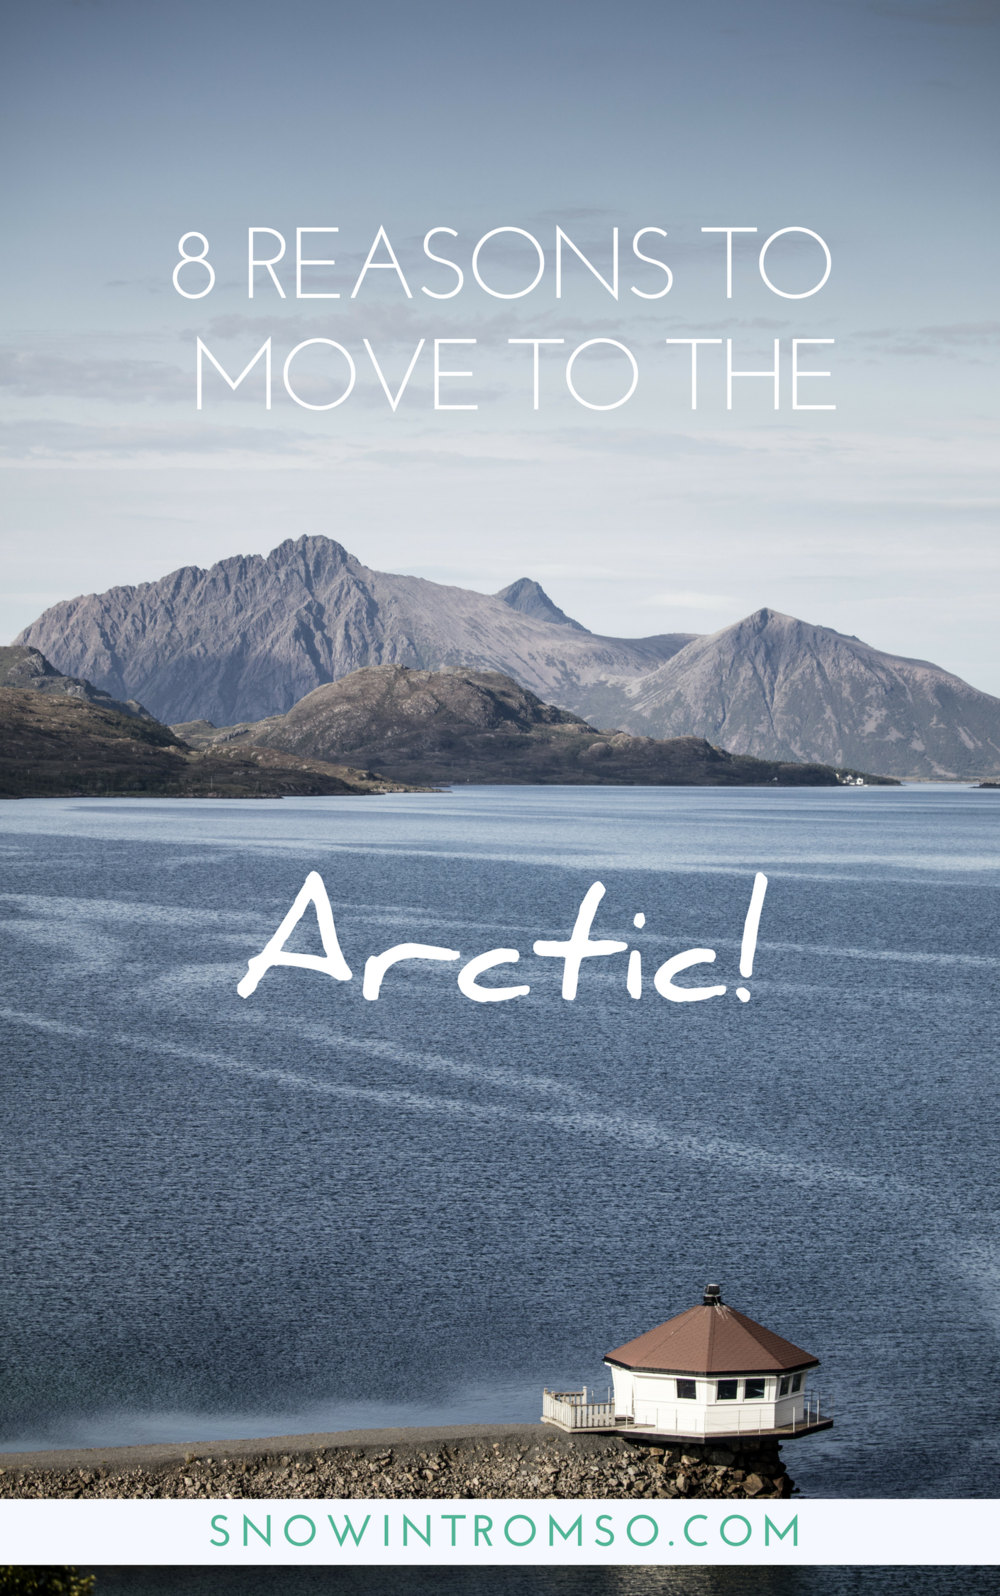 Click through to find out why you should move to the Arctic!